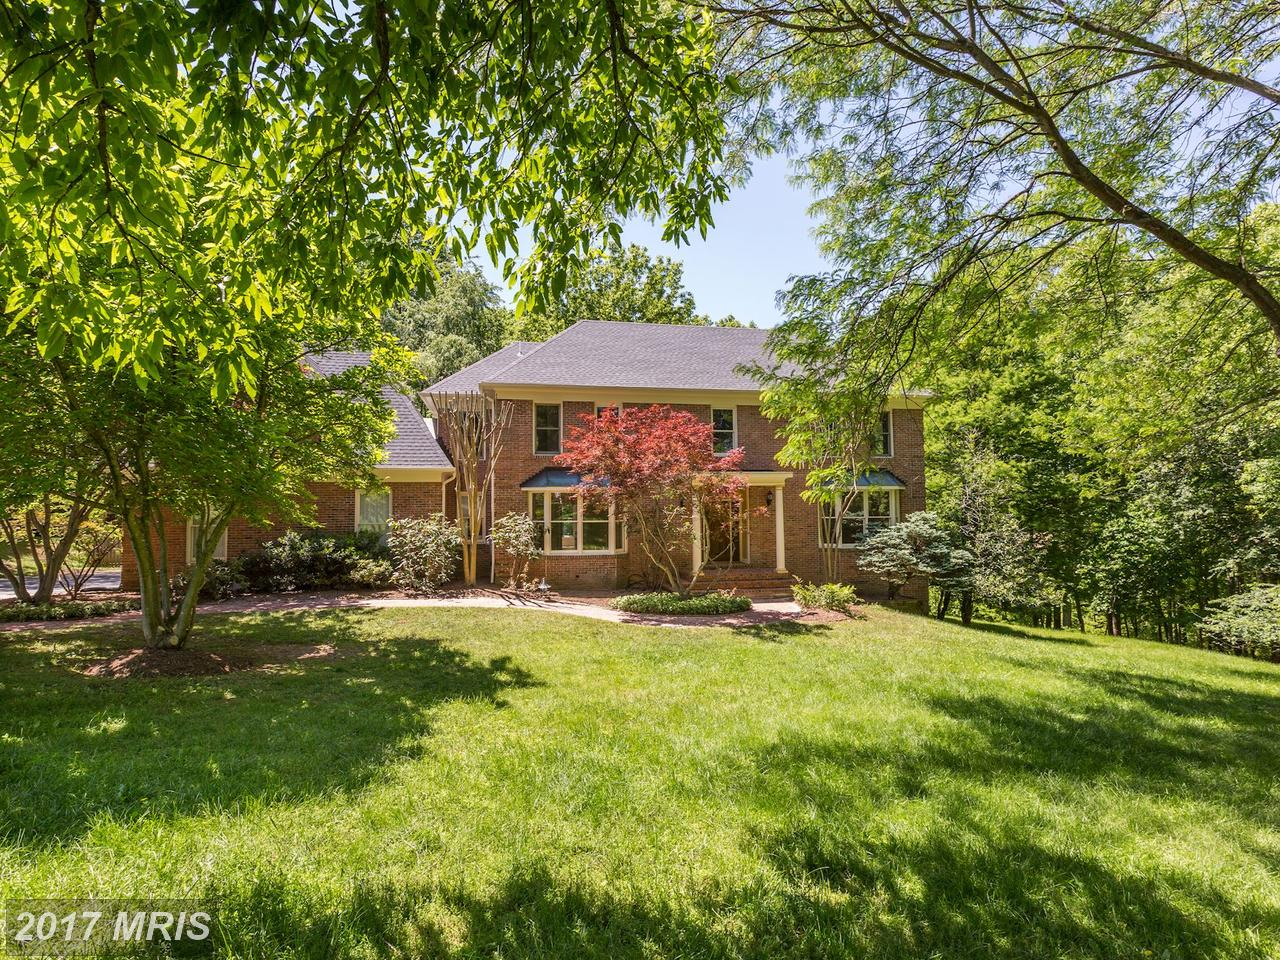 Single Family Home for Sale at Colonial, Detached - POTOMAC, MD 12308 RIVERS EDGE DR Potomac, Maryland,20854 United States